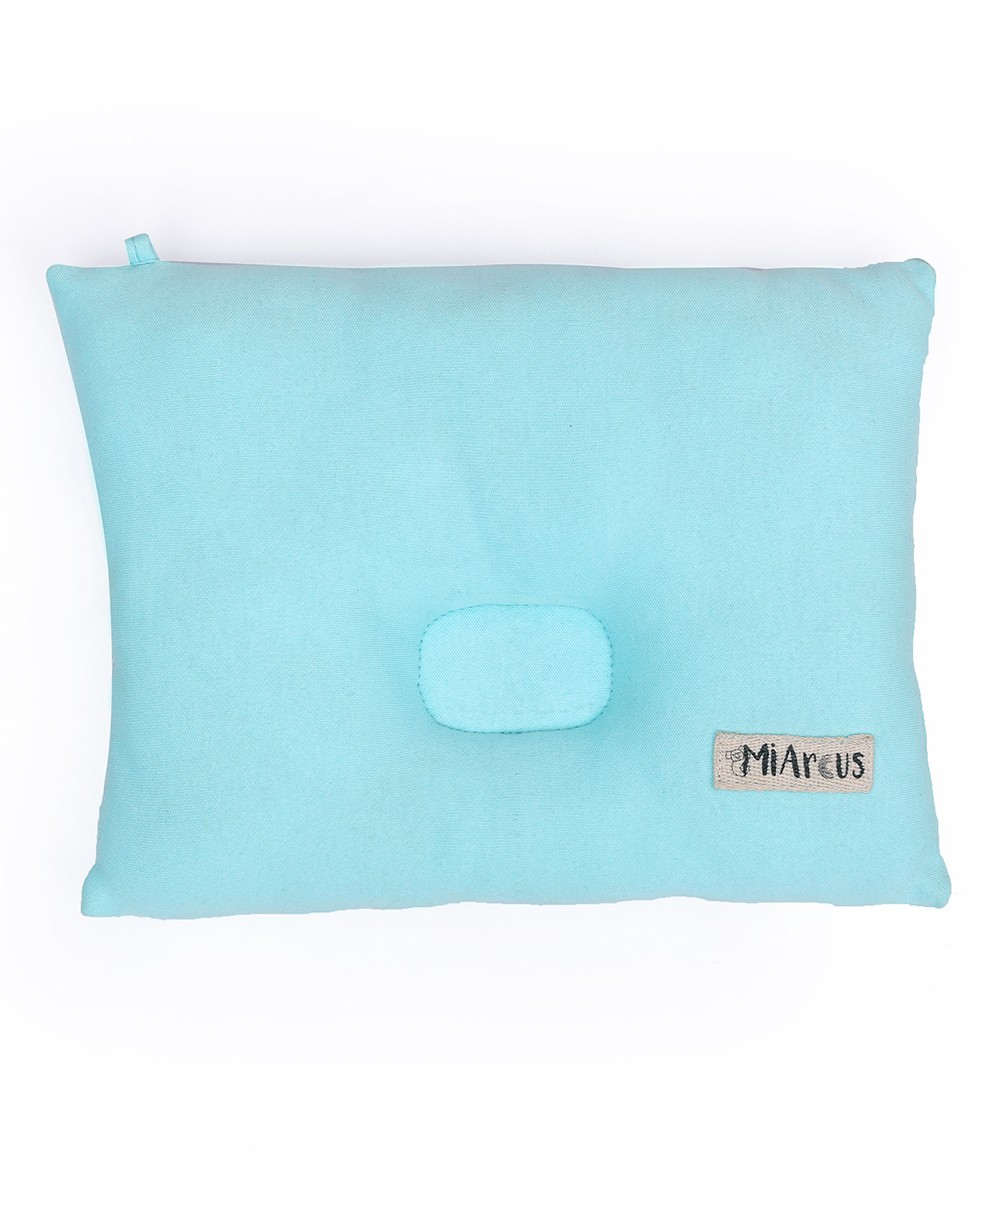 Arcus Beeby Interlock Pillow - Pack of 2